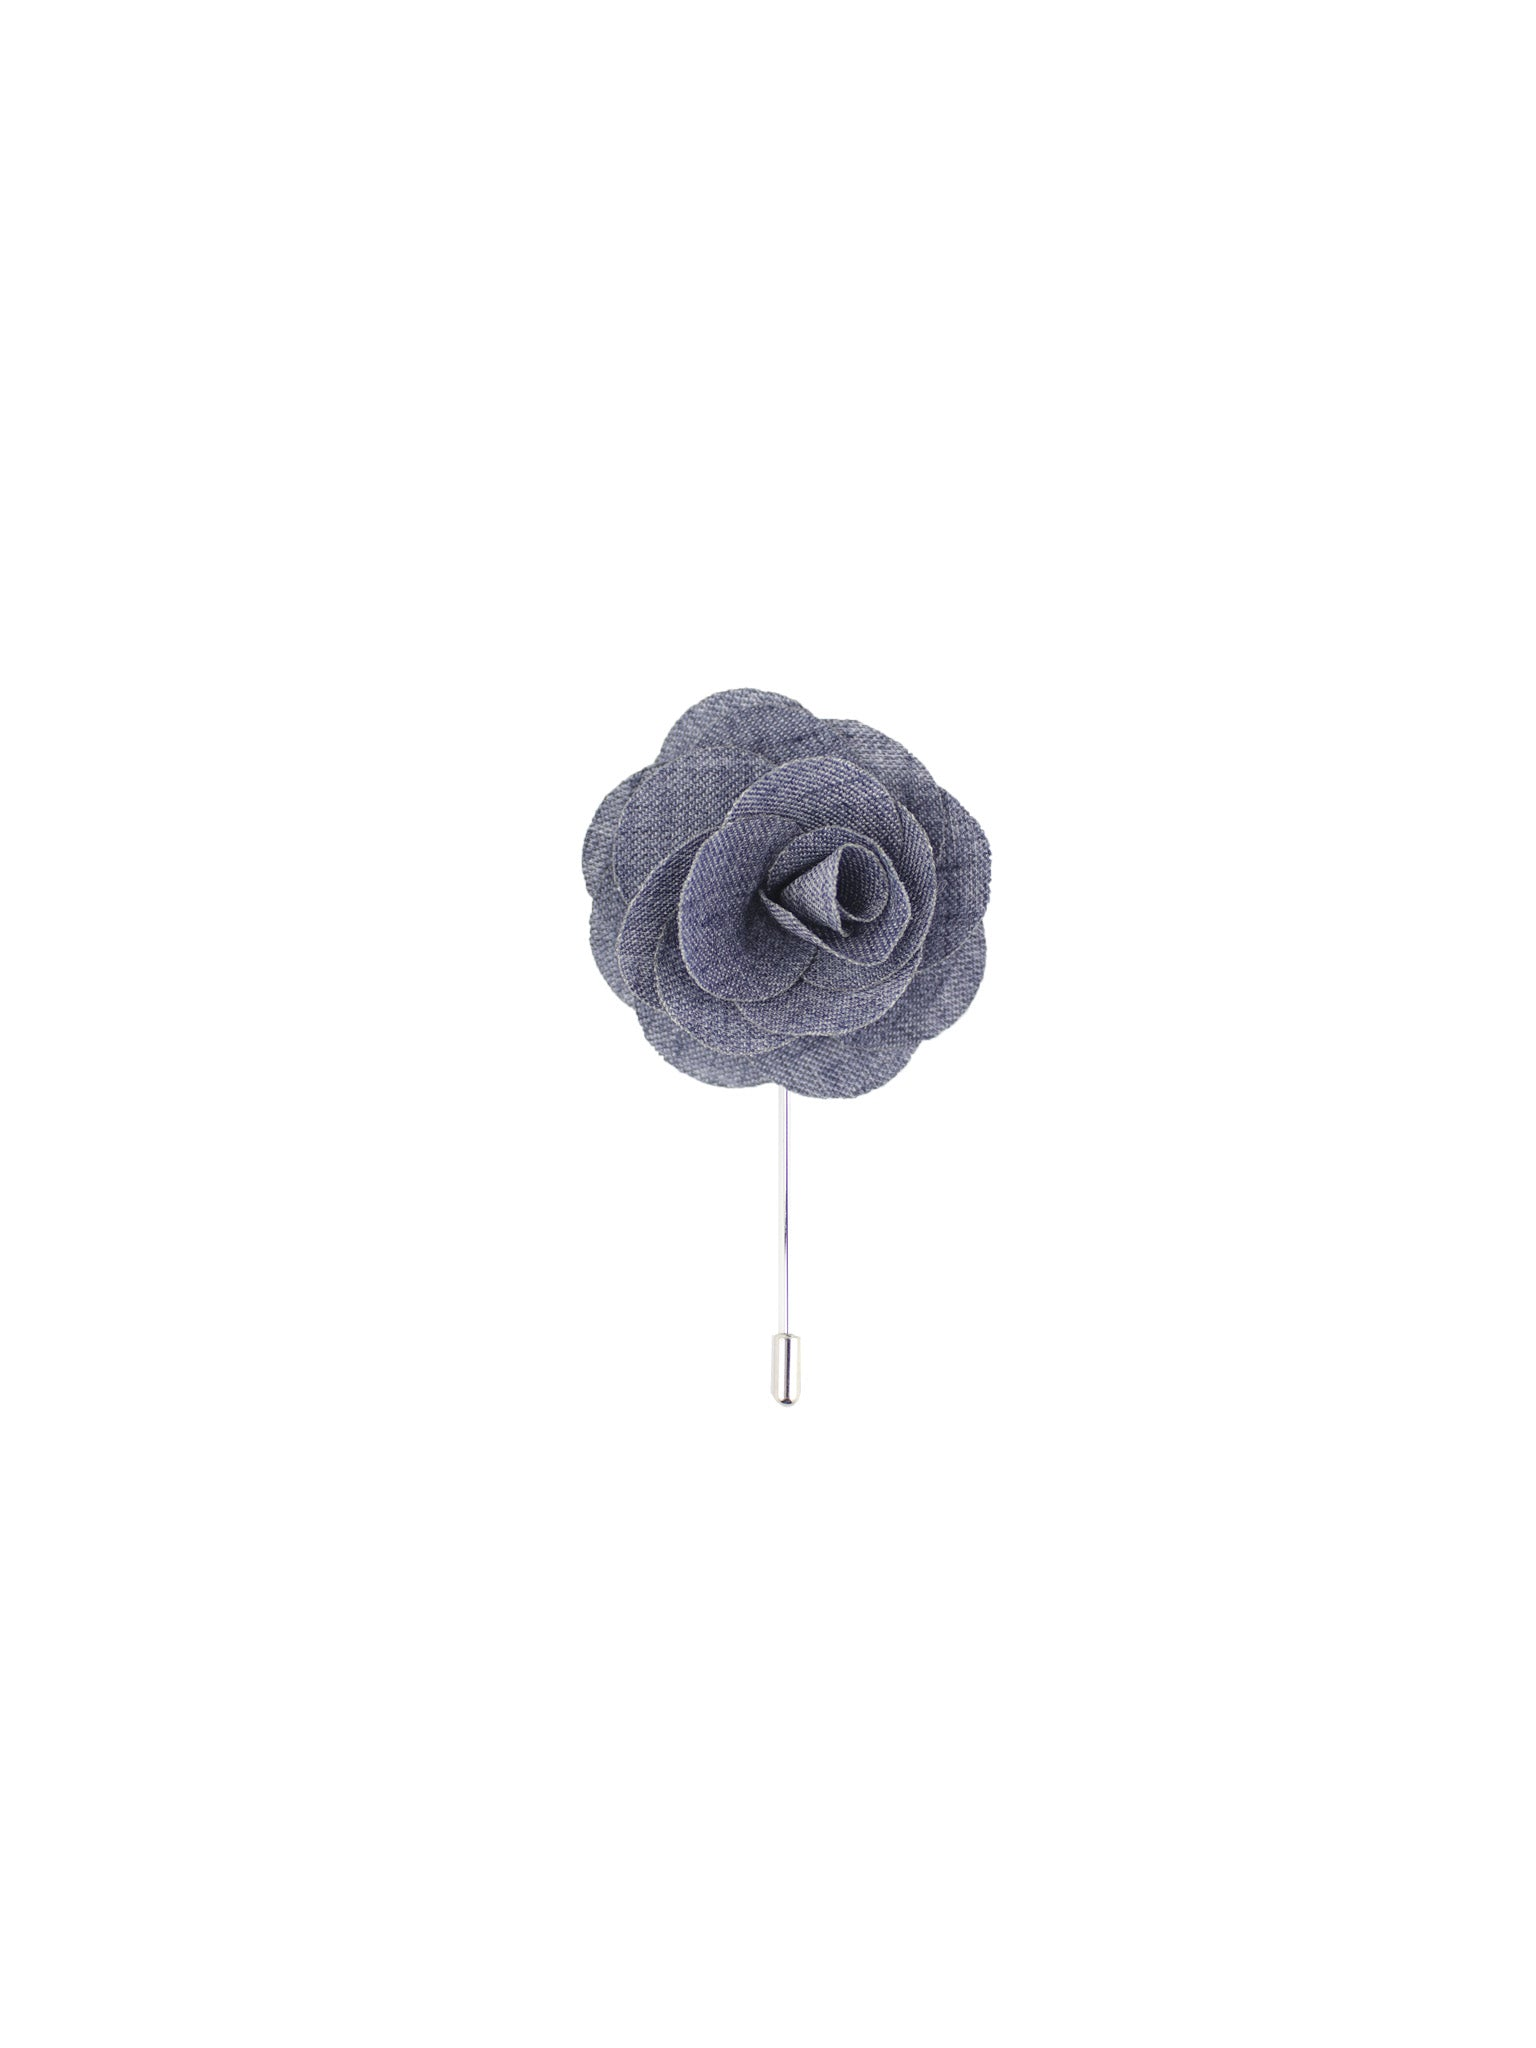 Lightweight Navy Lapel Pin from DIBI